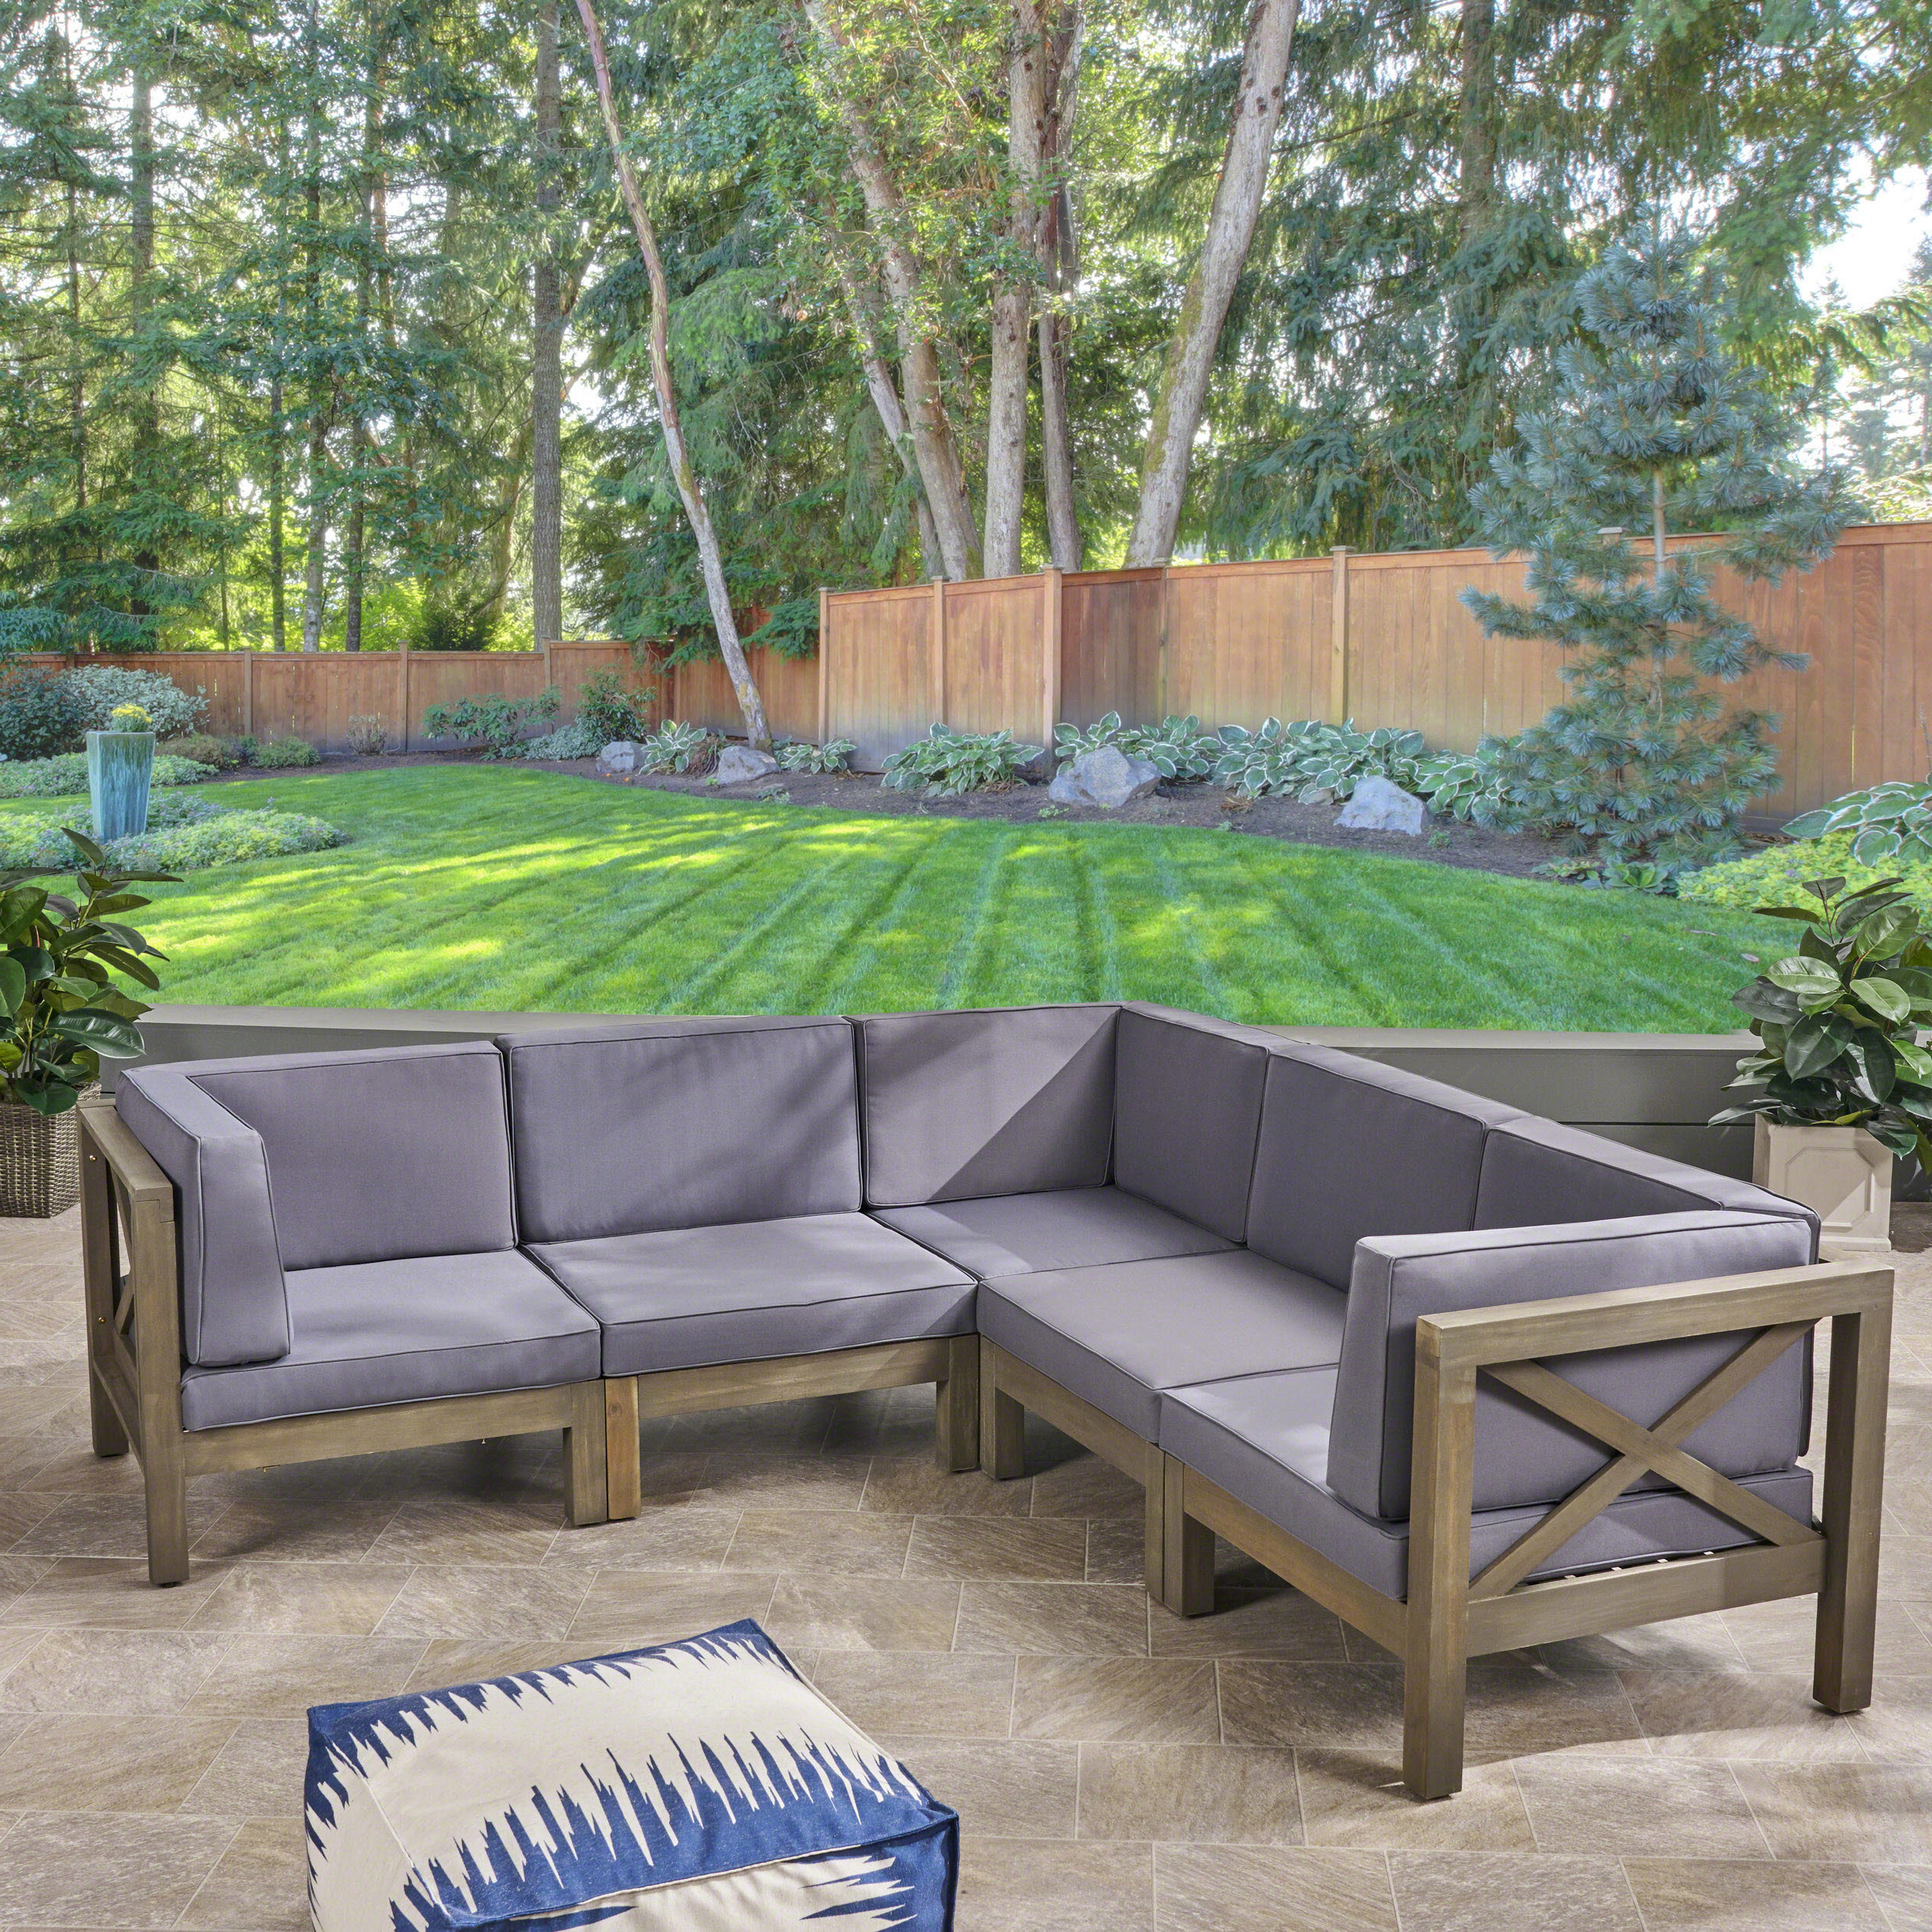 Most Recent Tim X Back Patio Loveseats With Cushions Within Ellison Patio Sectional With Cushions (View 17 of 20)